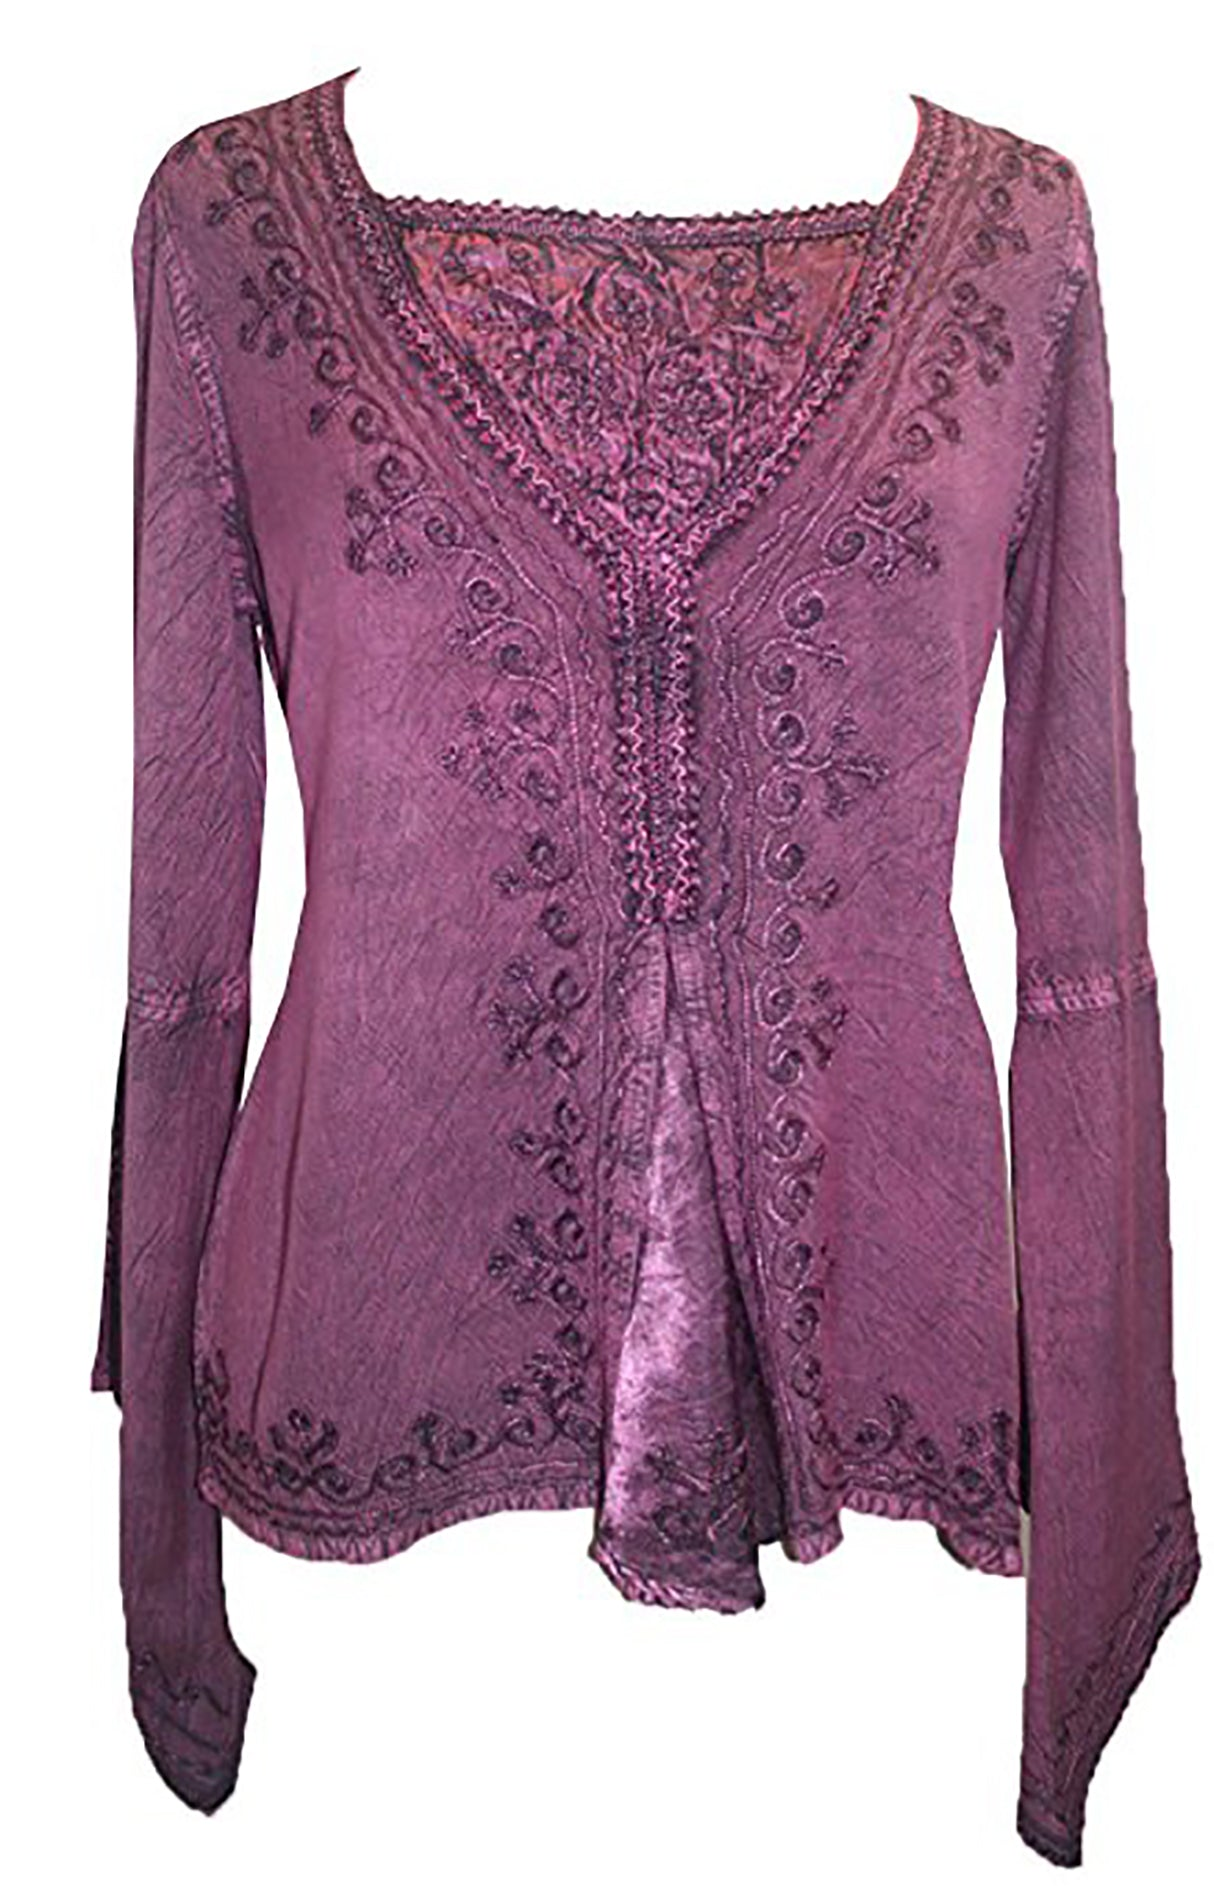 Renaissance Gypsy Bell Sleeve Blouse Top - Agan Traders, Plum